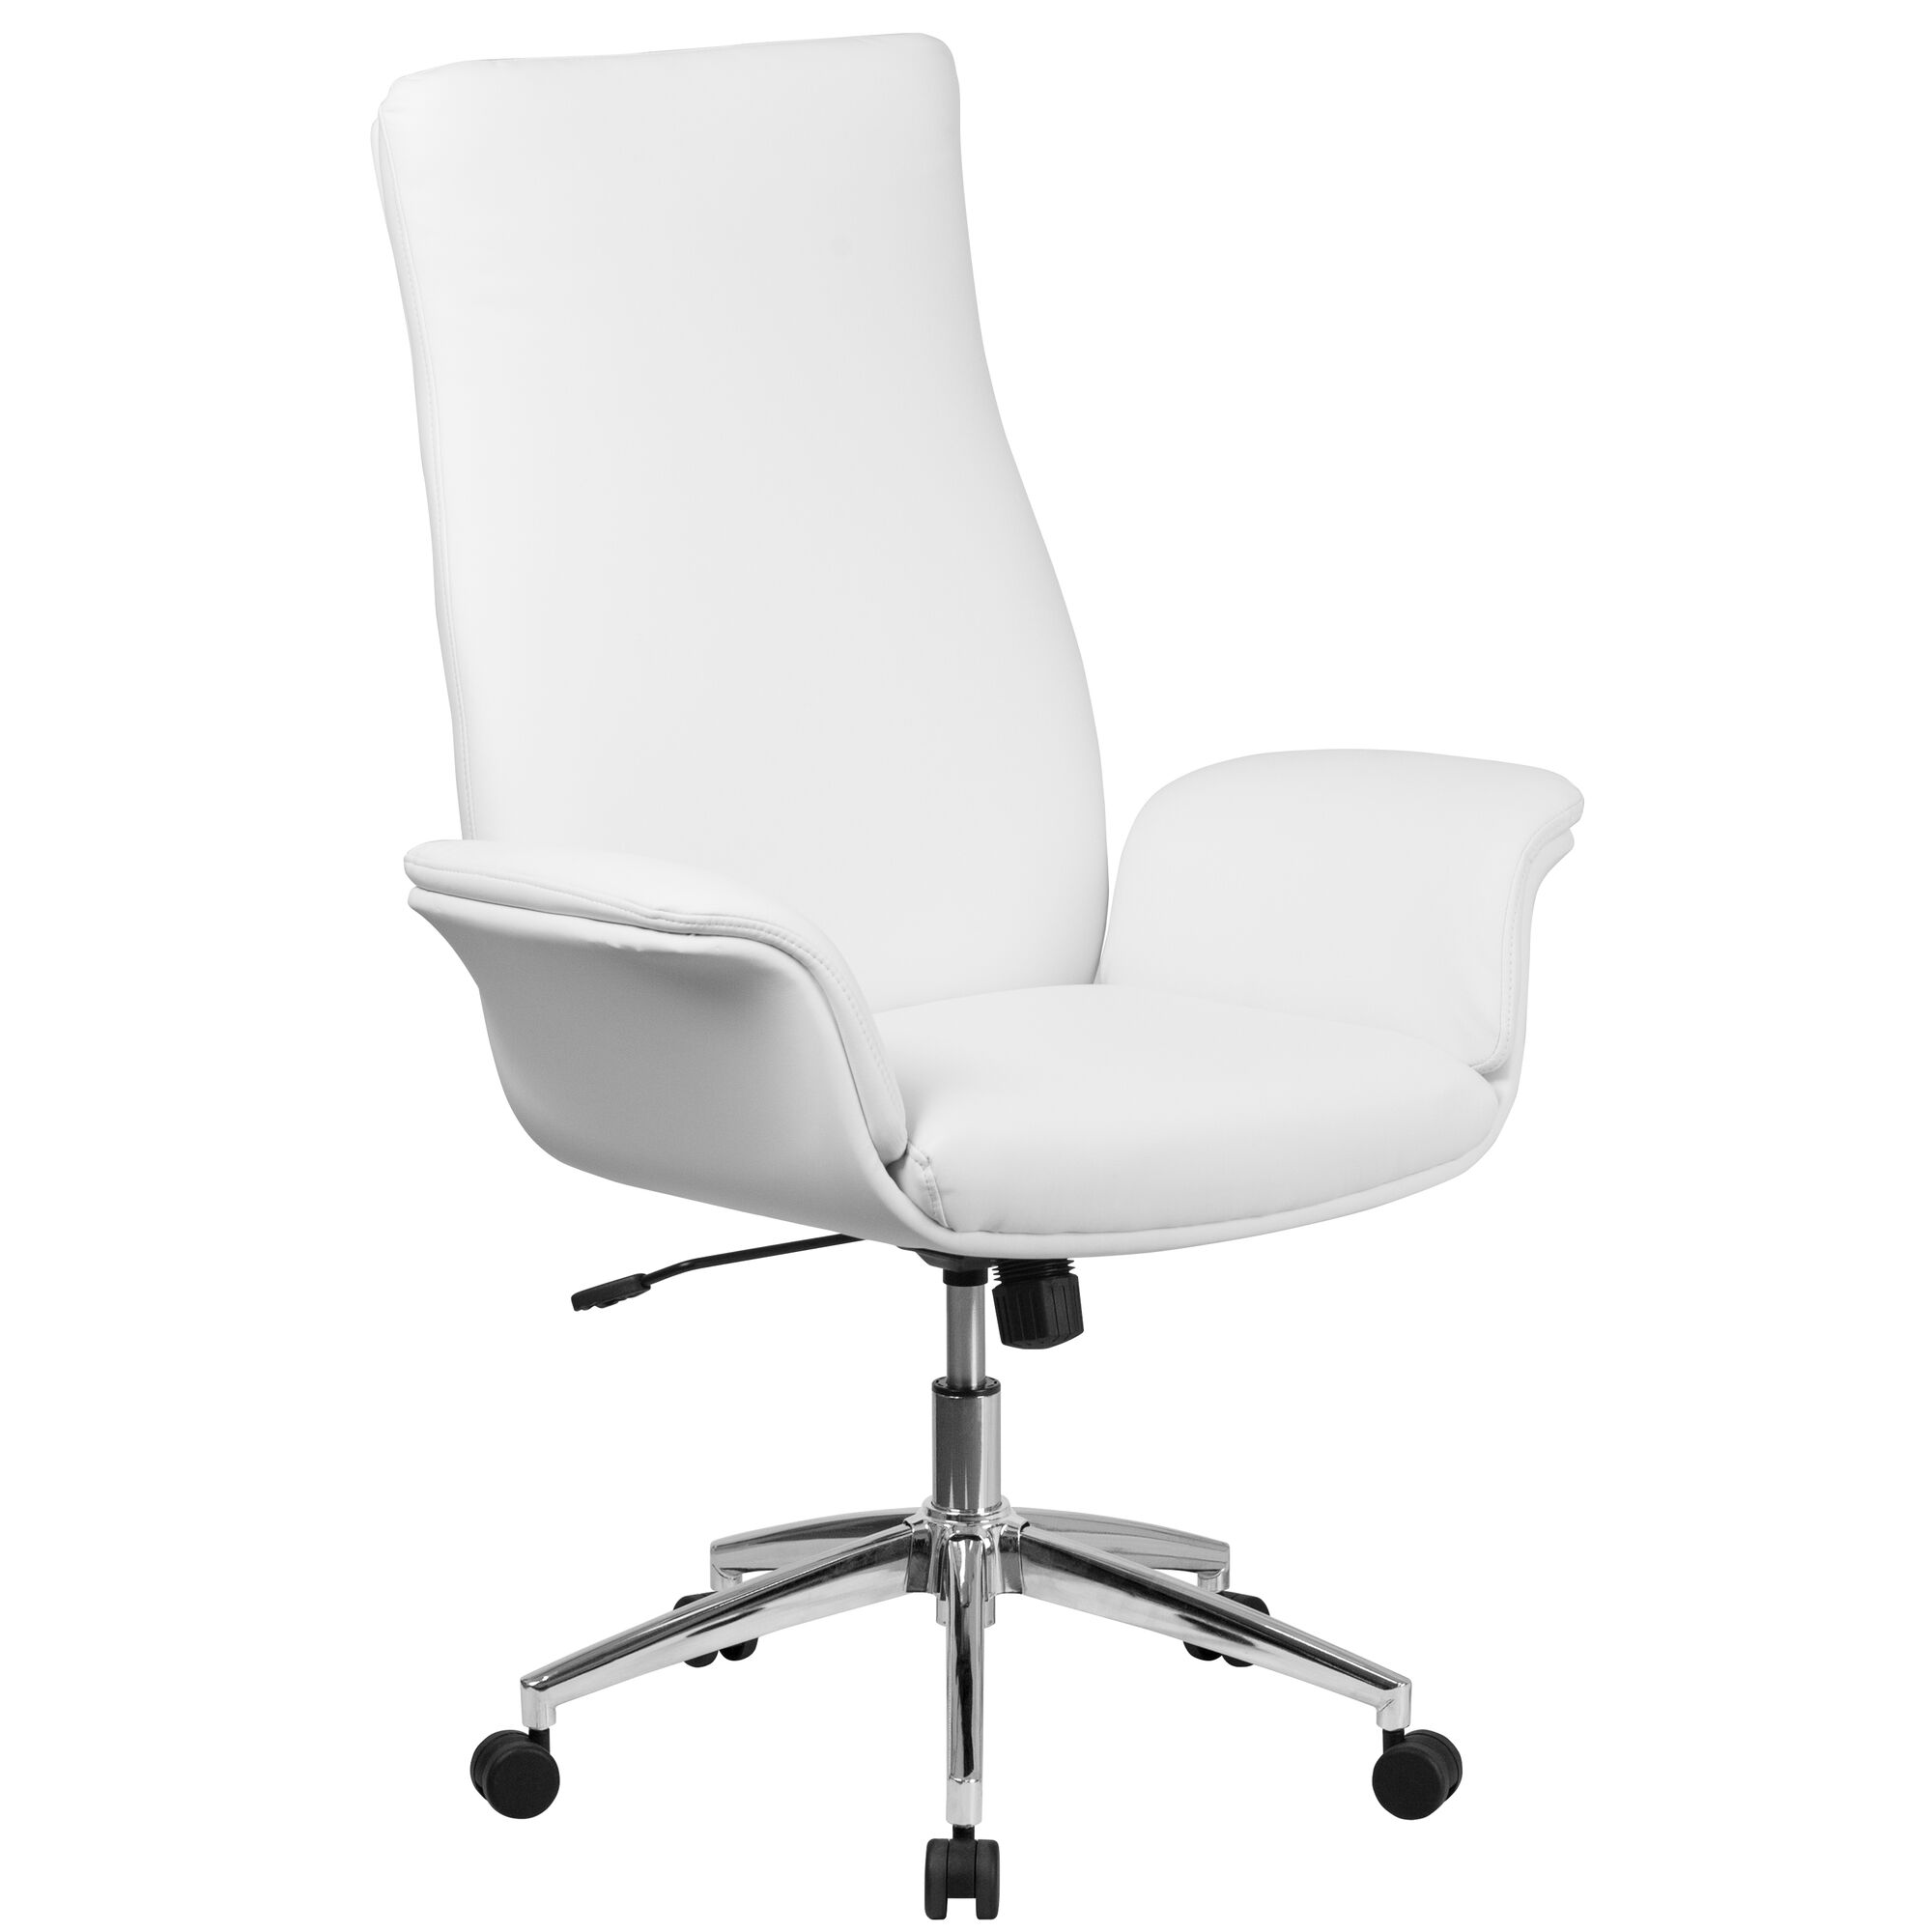 High Back White Leather Executive Swivel Office Chair with Flared Arms